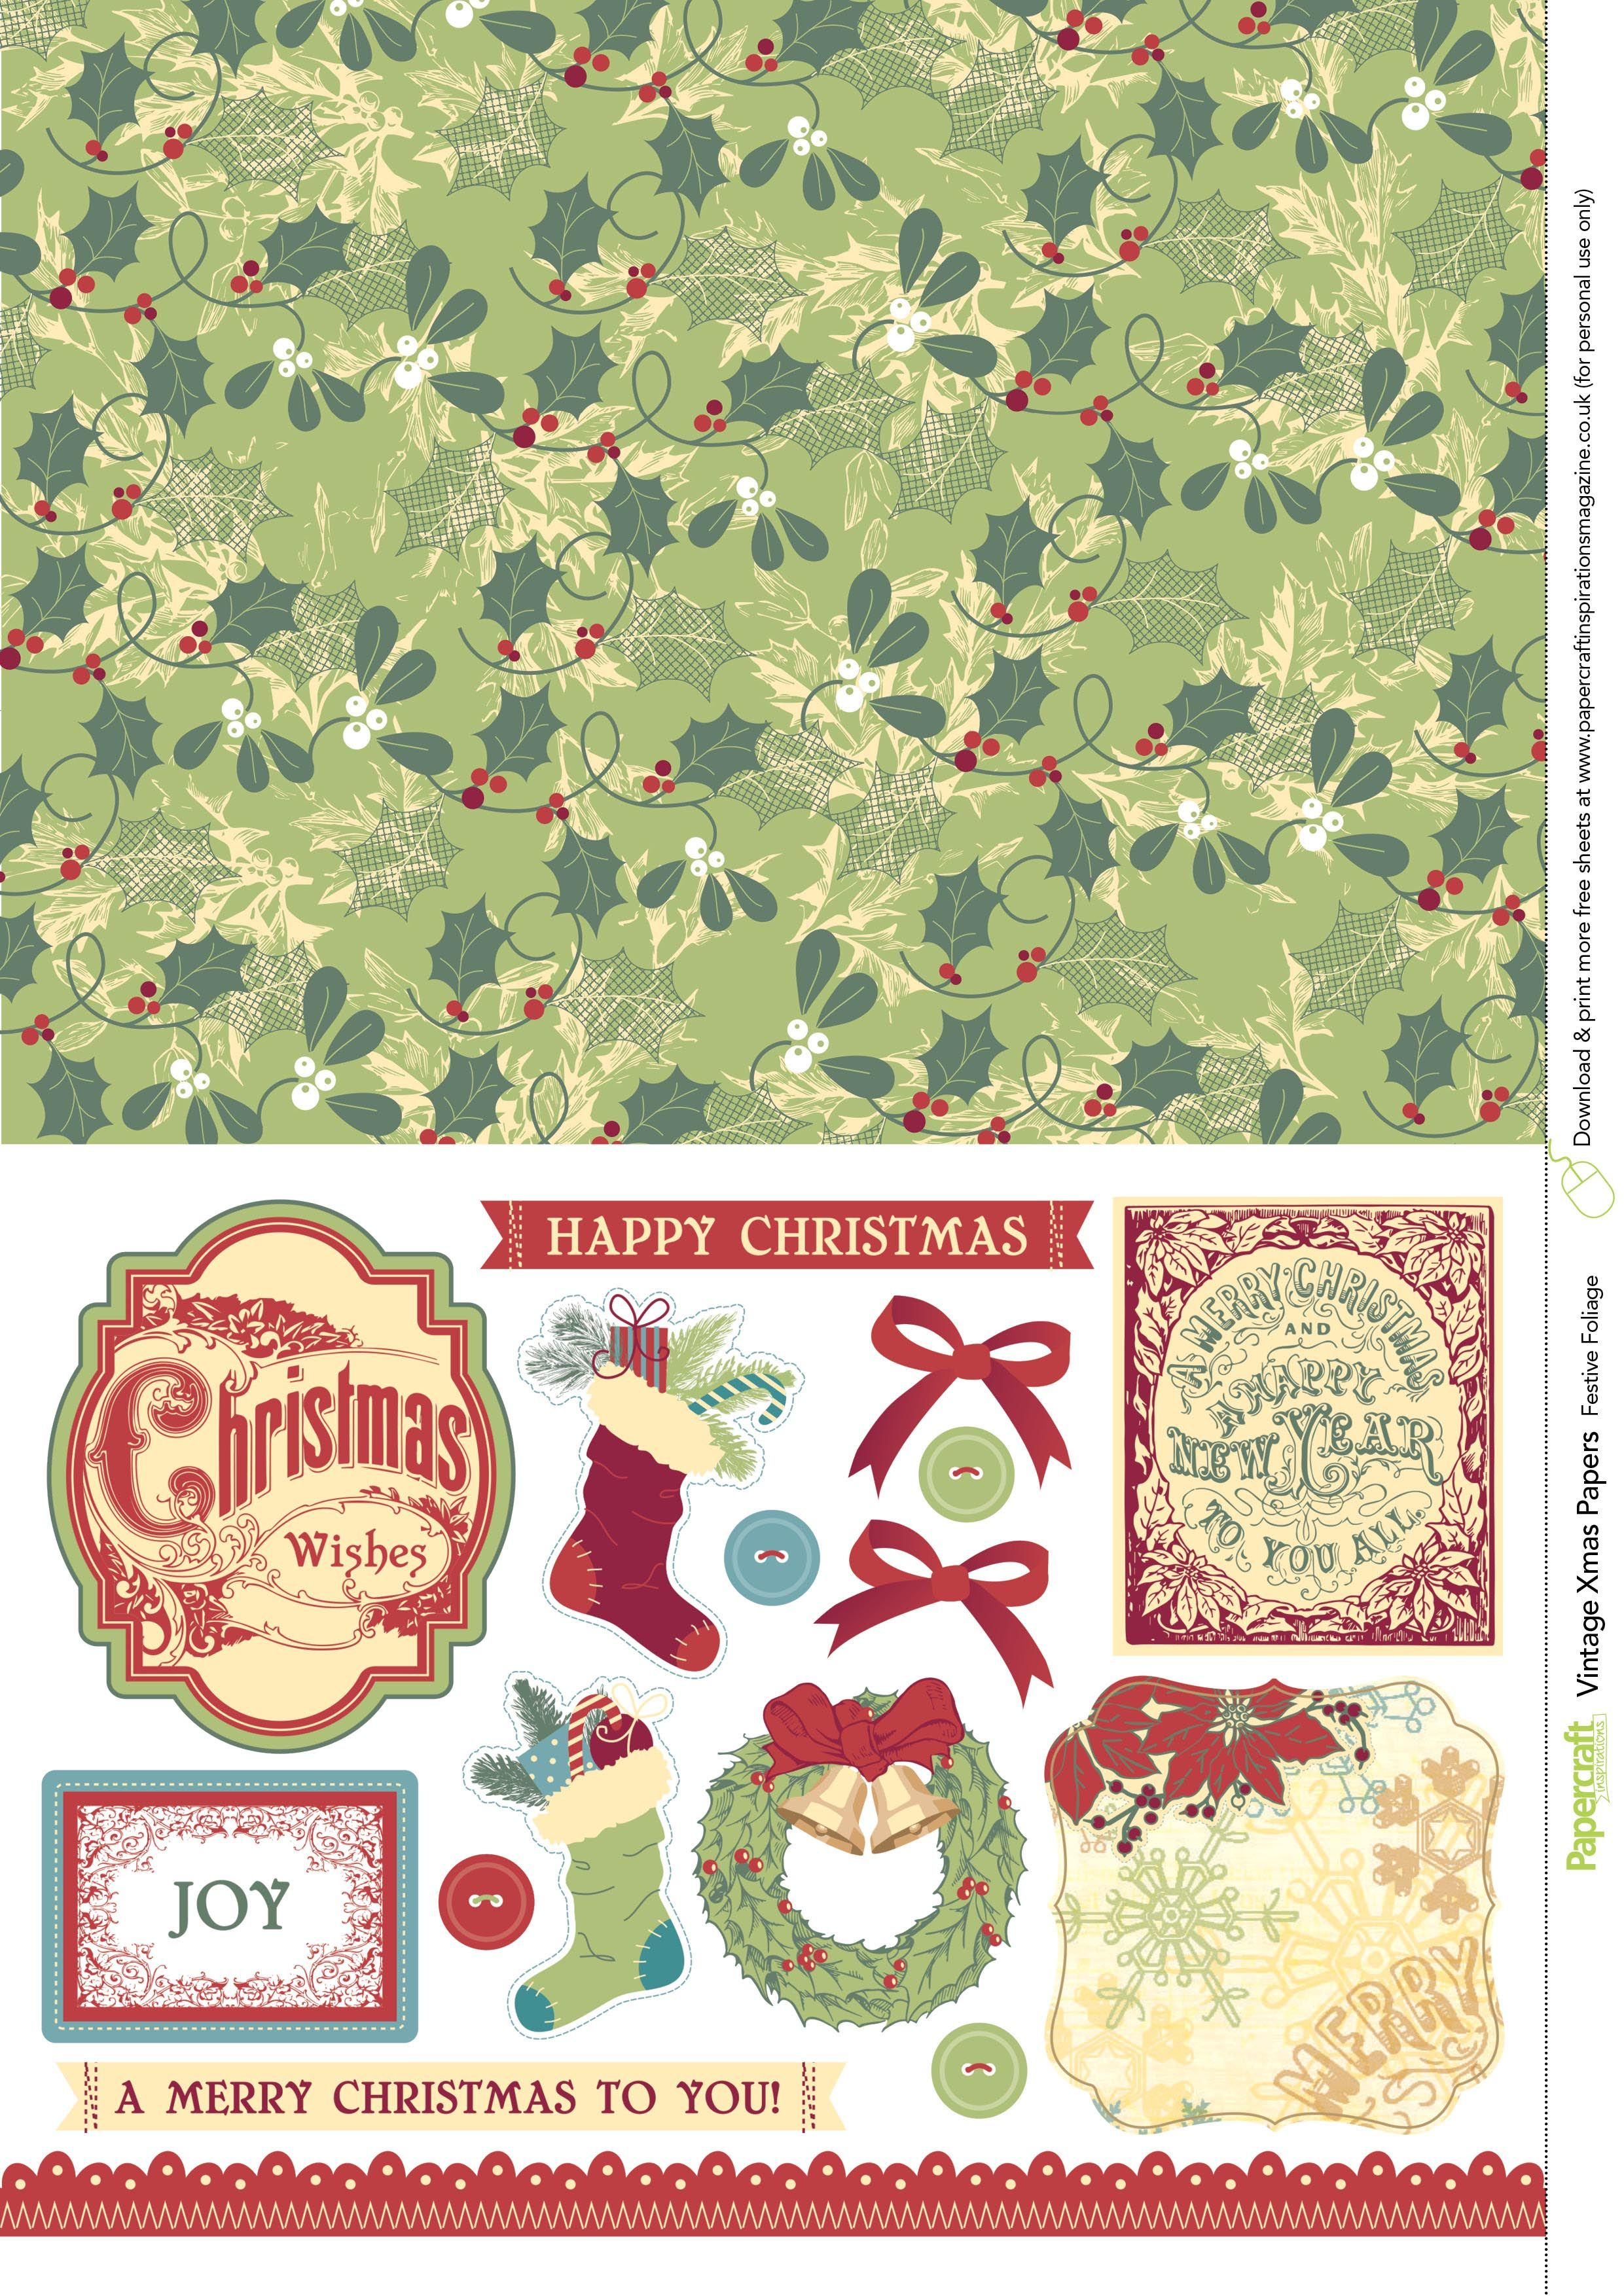 Add A Nostalgic Feel To Your Festive Makes With These